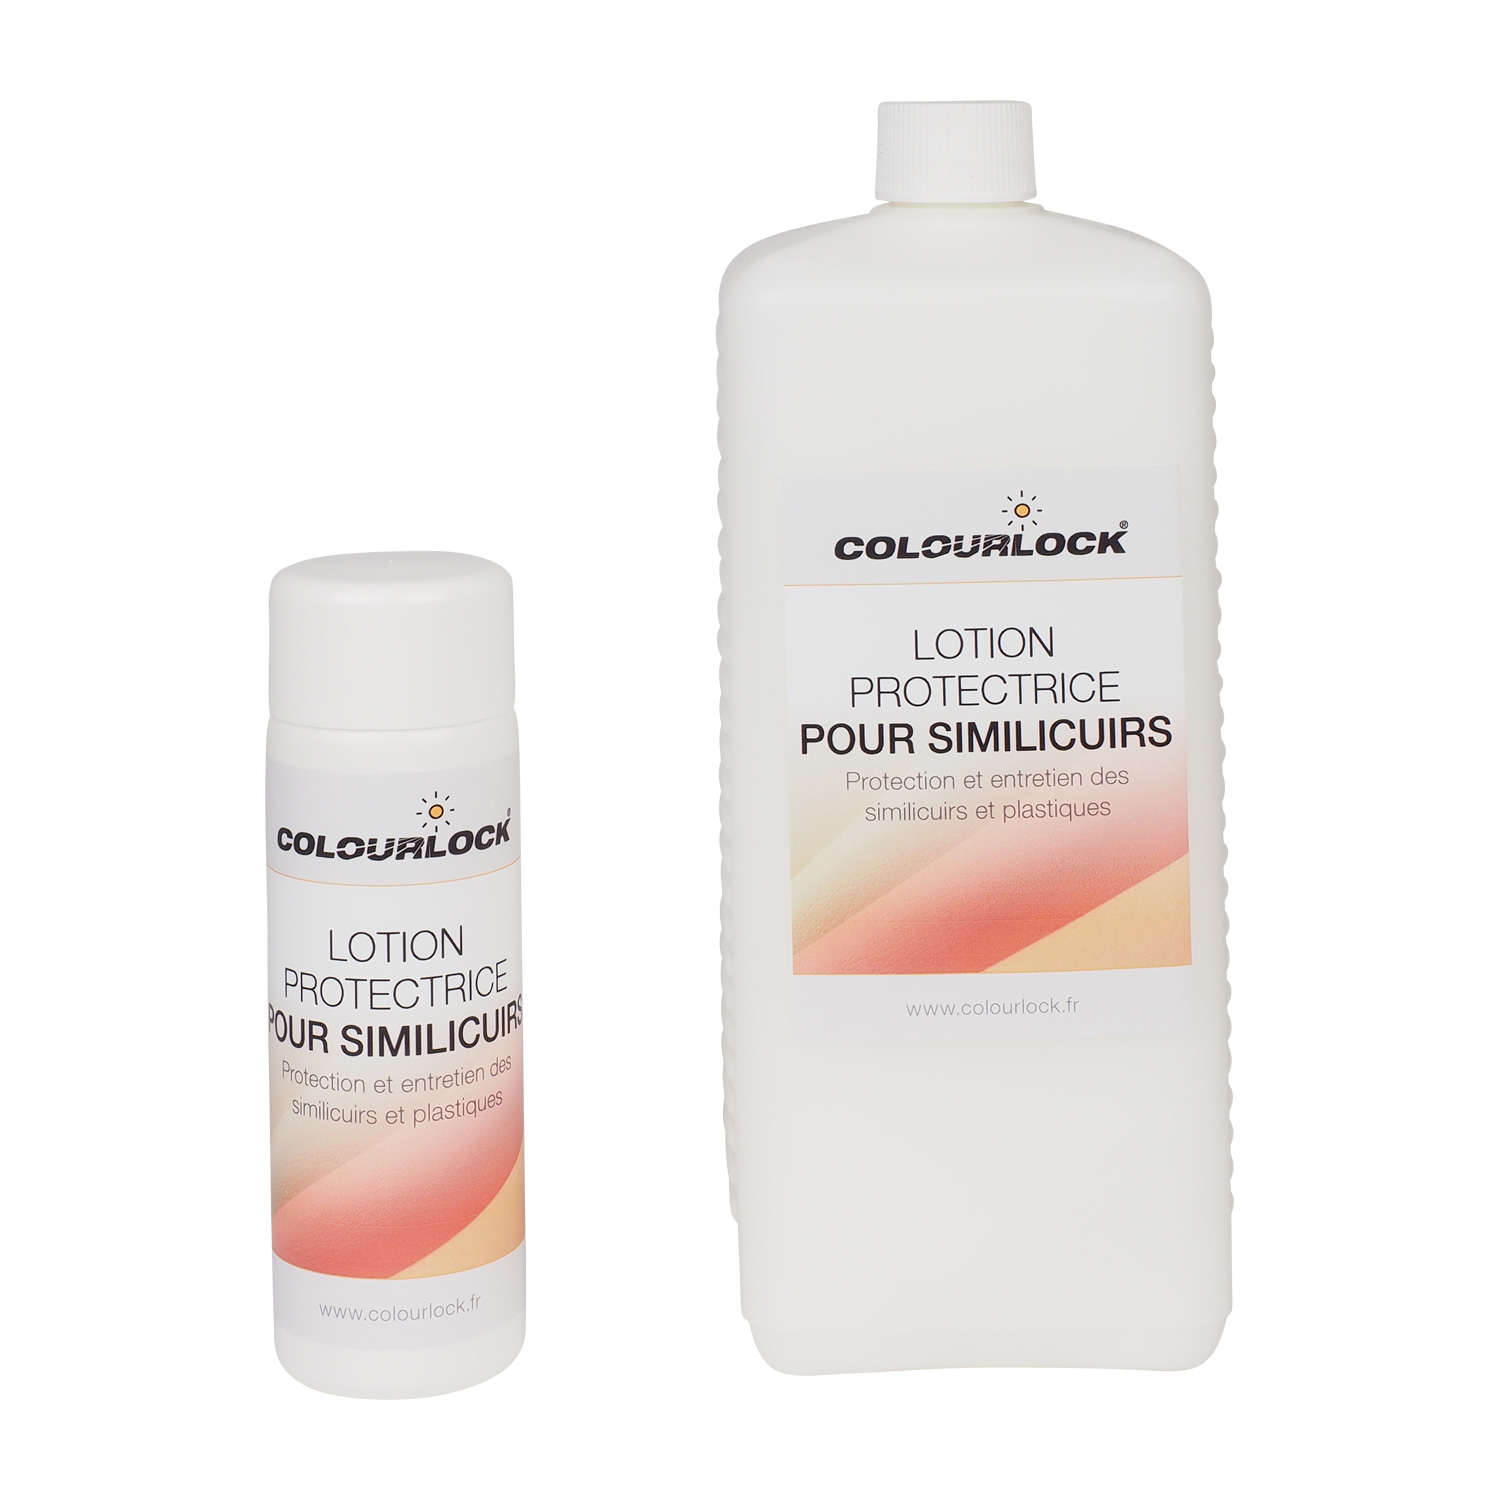 Lotion protectrice pour similicuir COLOURLOCK, 150 ml